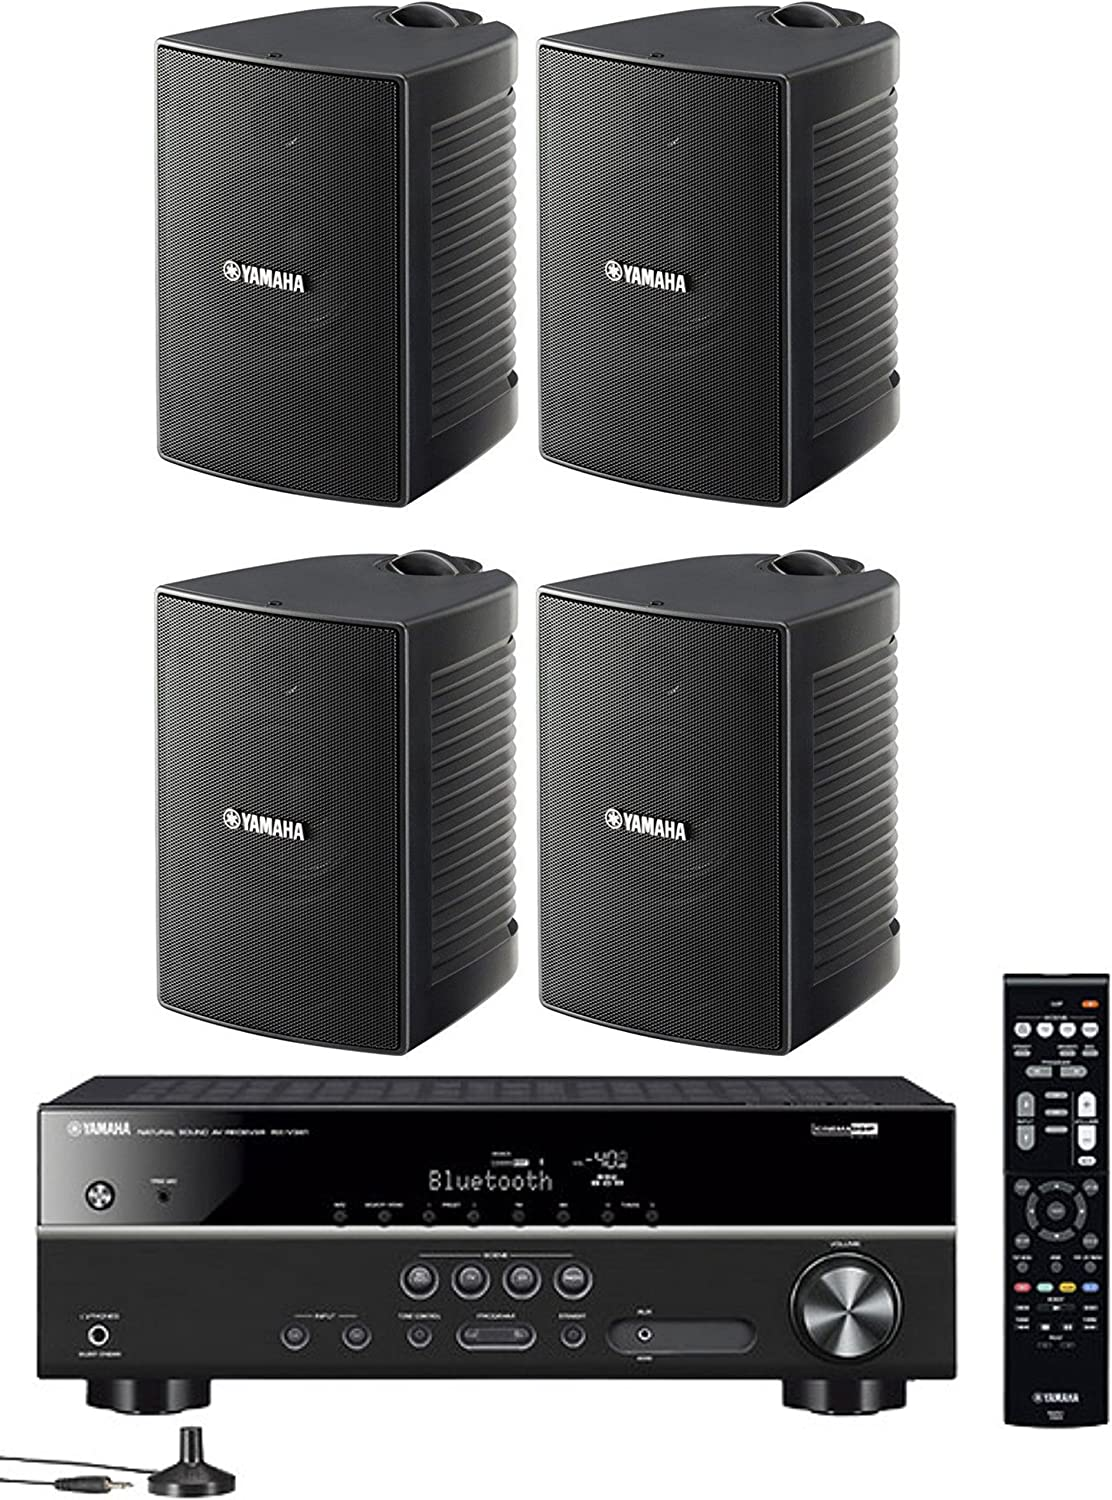 Yamaha 5.1-Channel Wireless Bluetooth 4K A/V Home Theater Receiver + Yamaha Natural Sound High Performance 2-Way Indoor/Outdoor Weatherproof Speakers (Set of 4)